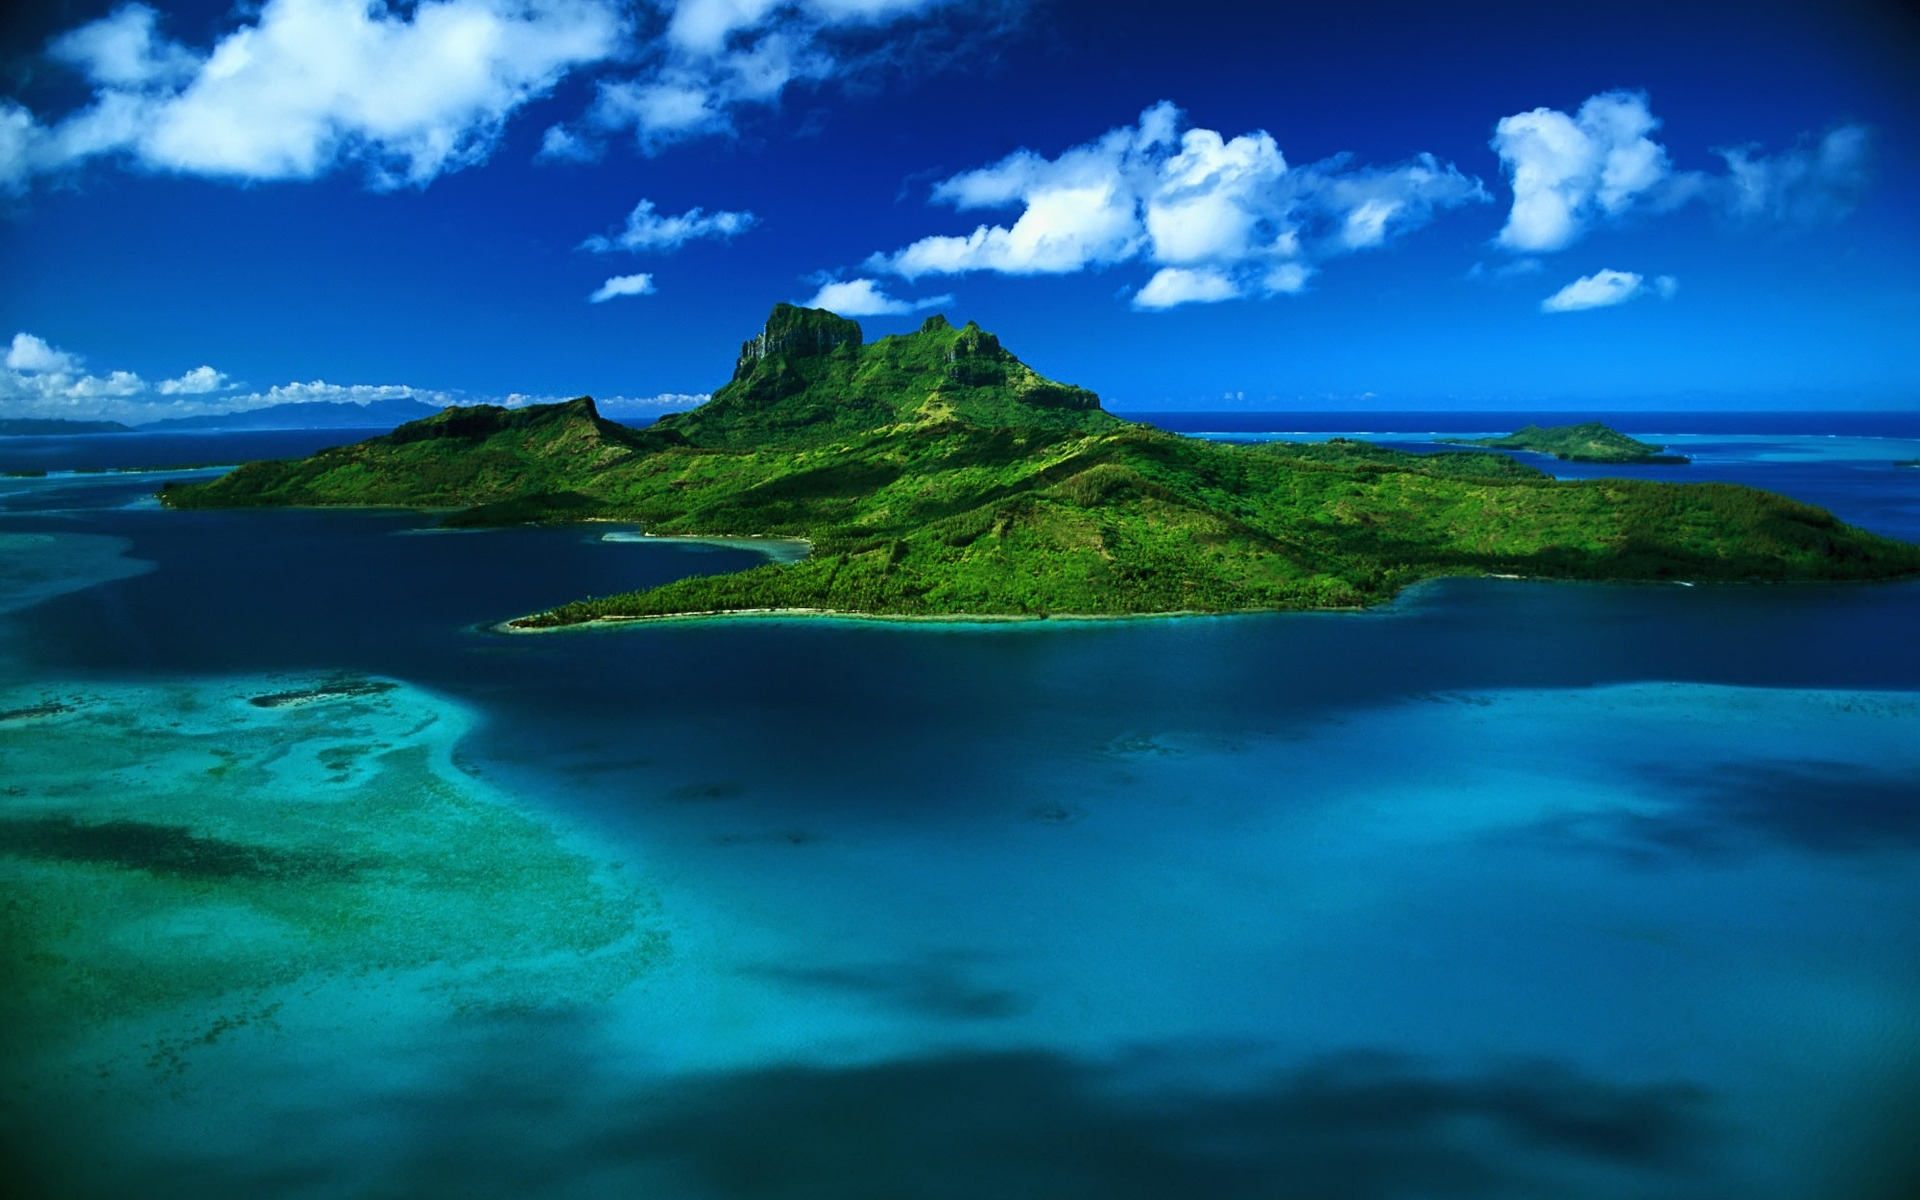 Best tropical island wallpaper   Just for Sharing 1920x1200